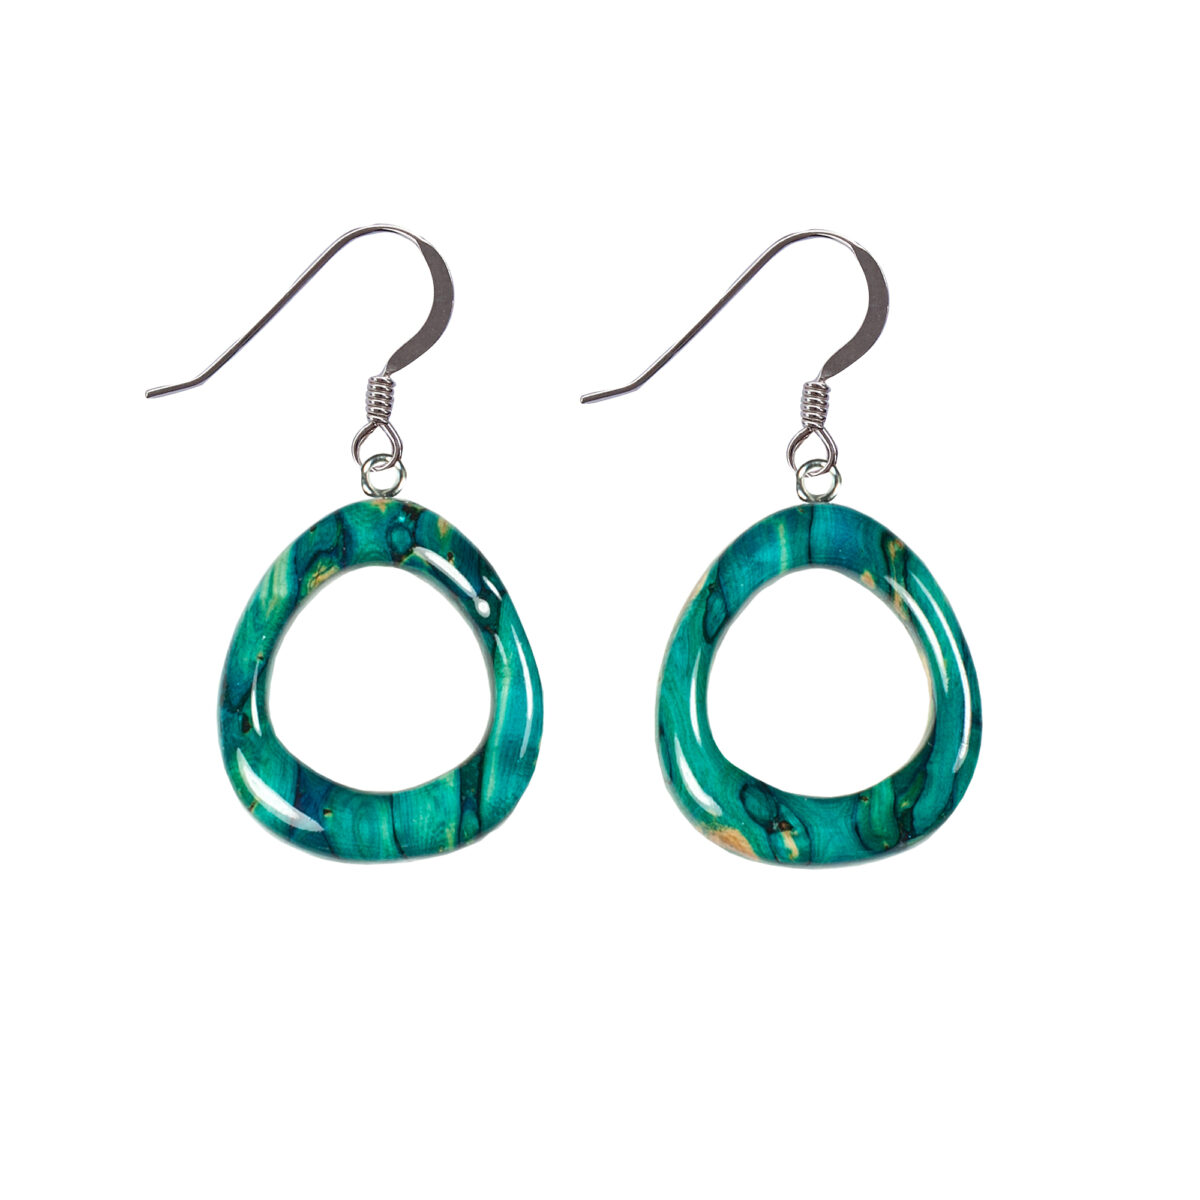 Rounded Triangle Drop Earrings